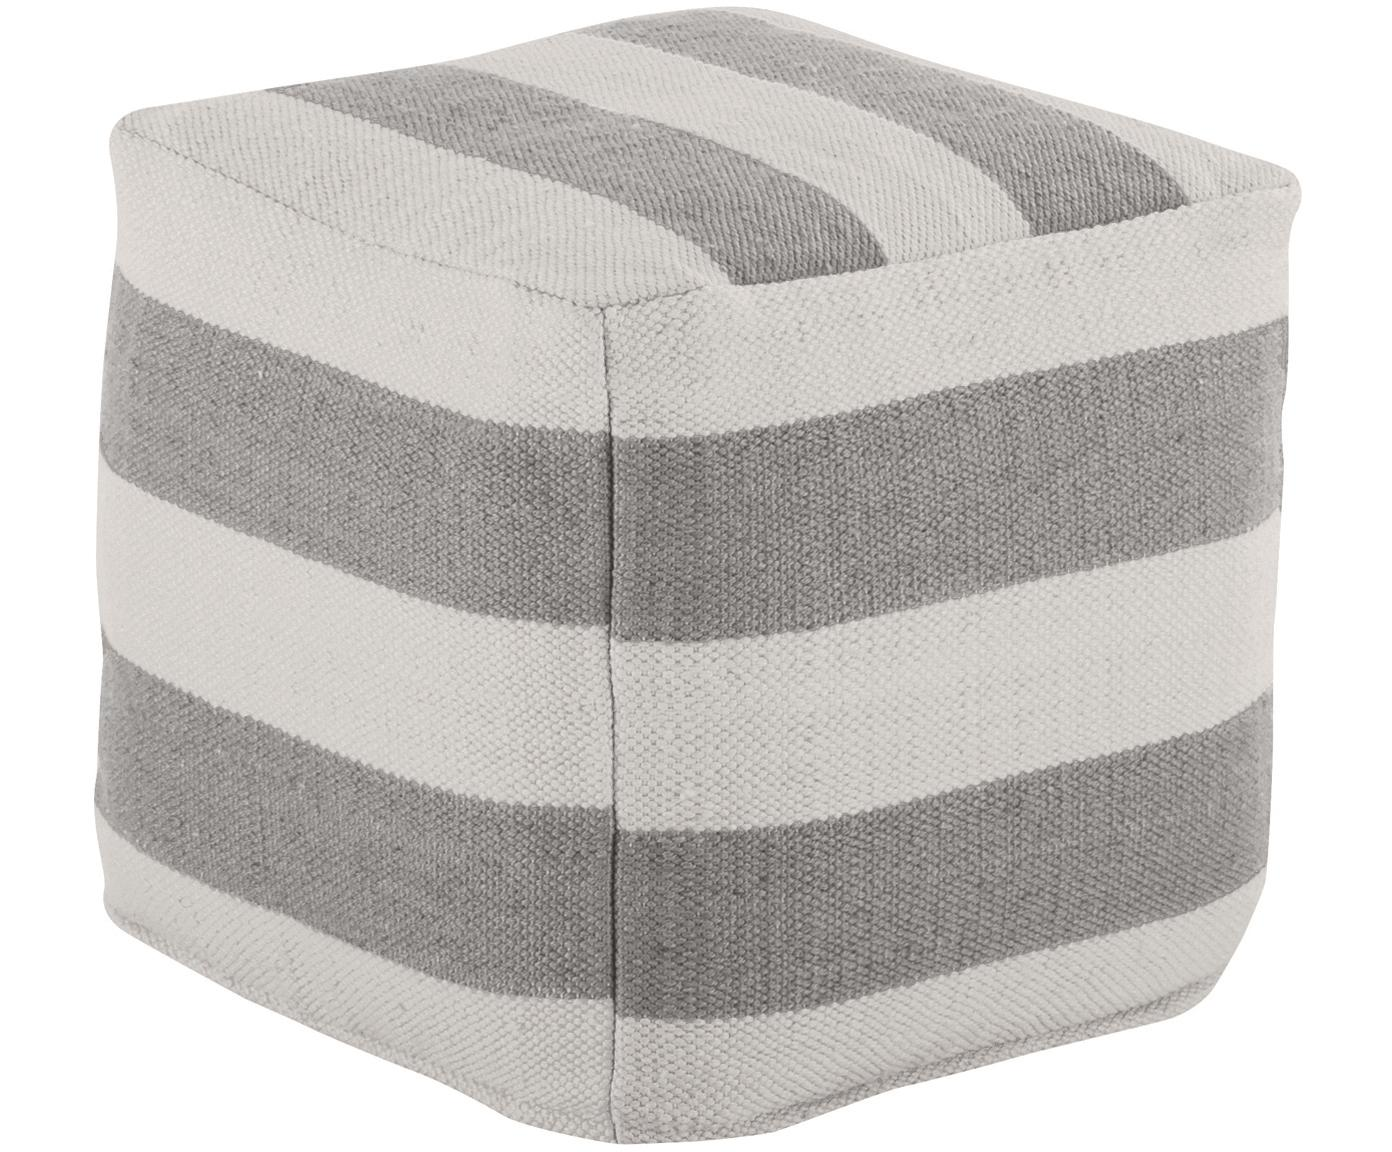 In- und Outdoor-Pouf Lani, Bezug: 100% recyceltes Polyester, Grau, Ecru, 40 x 40 cm